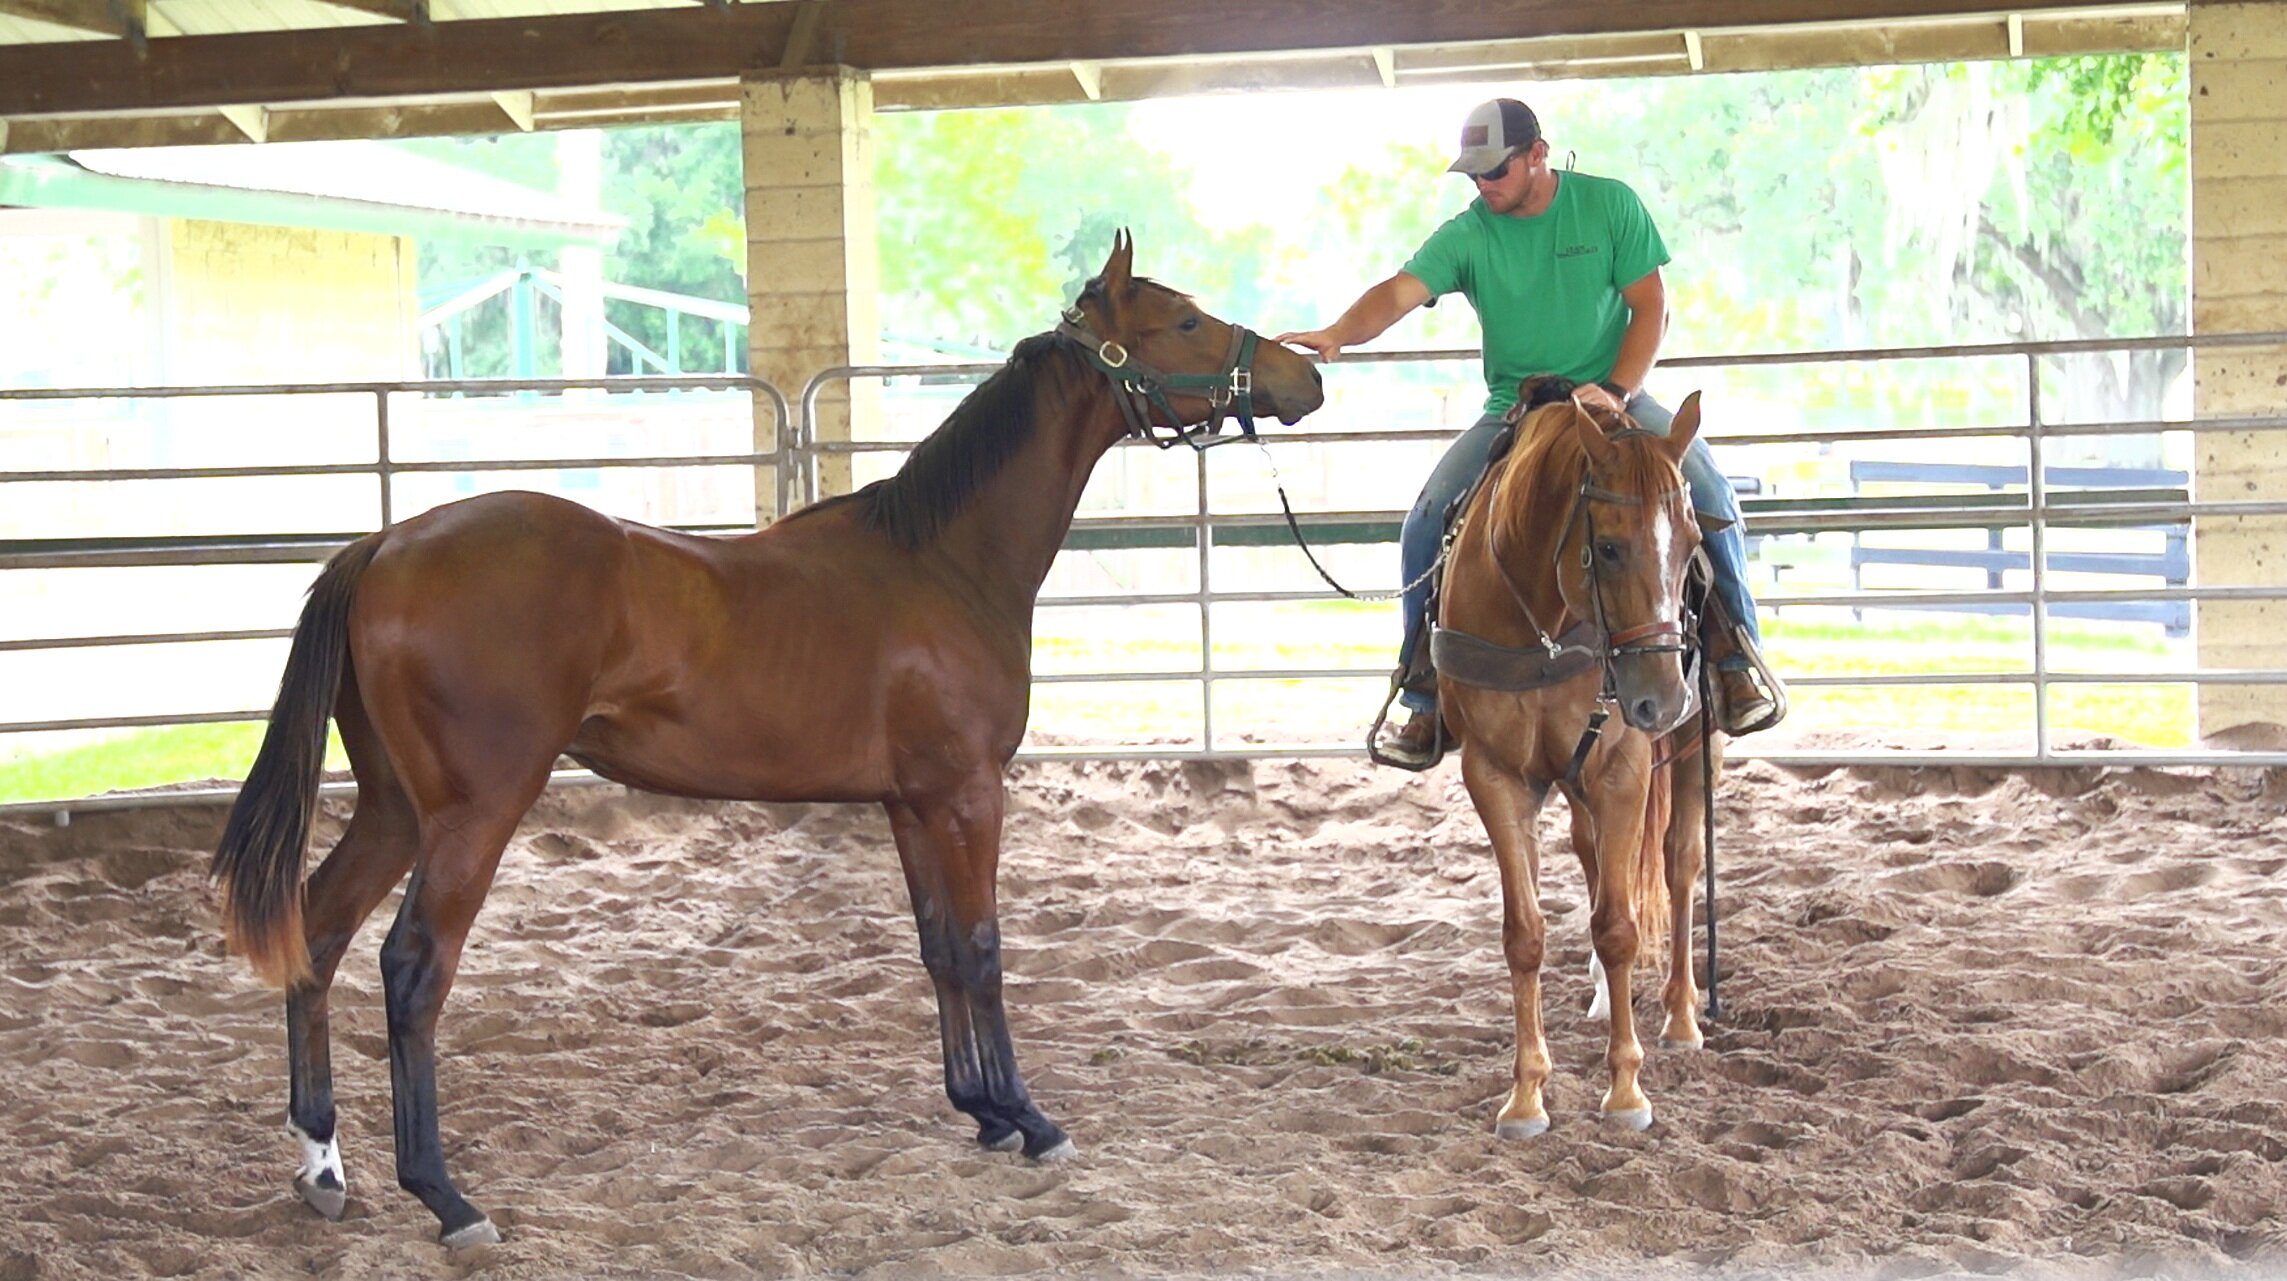 Covered Round Pen - The covered round pen is multipurpose. It provides a step in between stall and paddock turn out where a horse can stretch their legs, get fresh air and yet still be contained so they do not injure themselves. The round pen is also where all the horses get introduced to a saddle and rider for the first time.